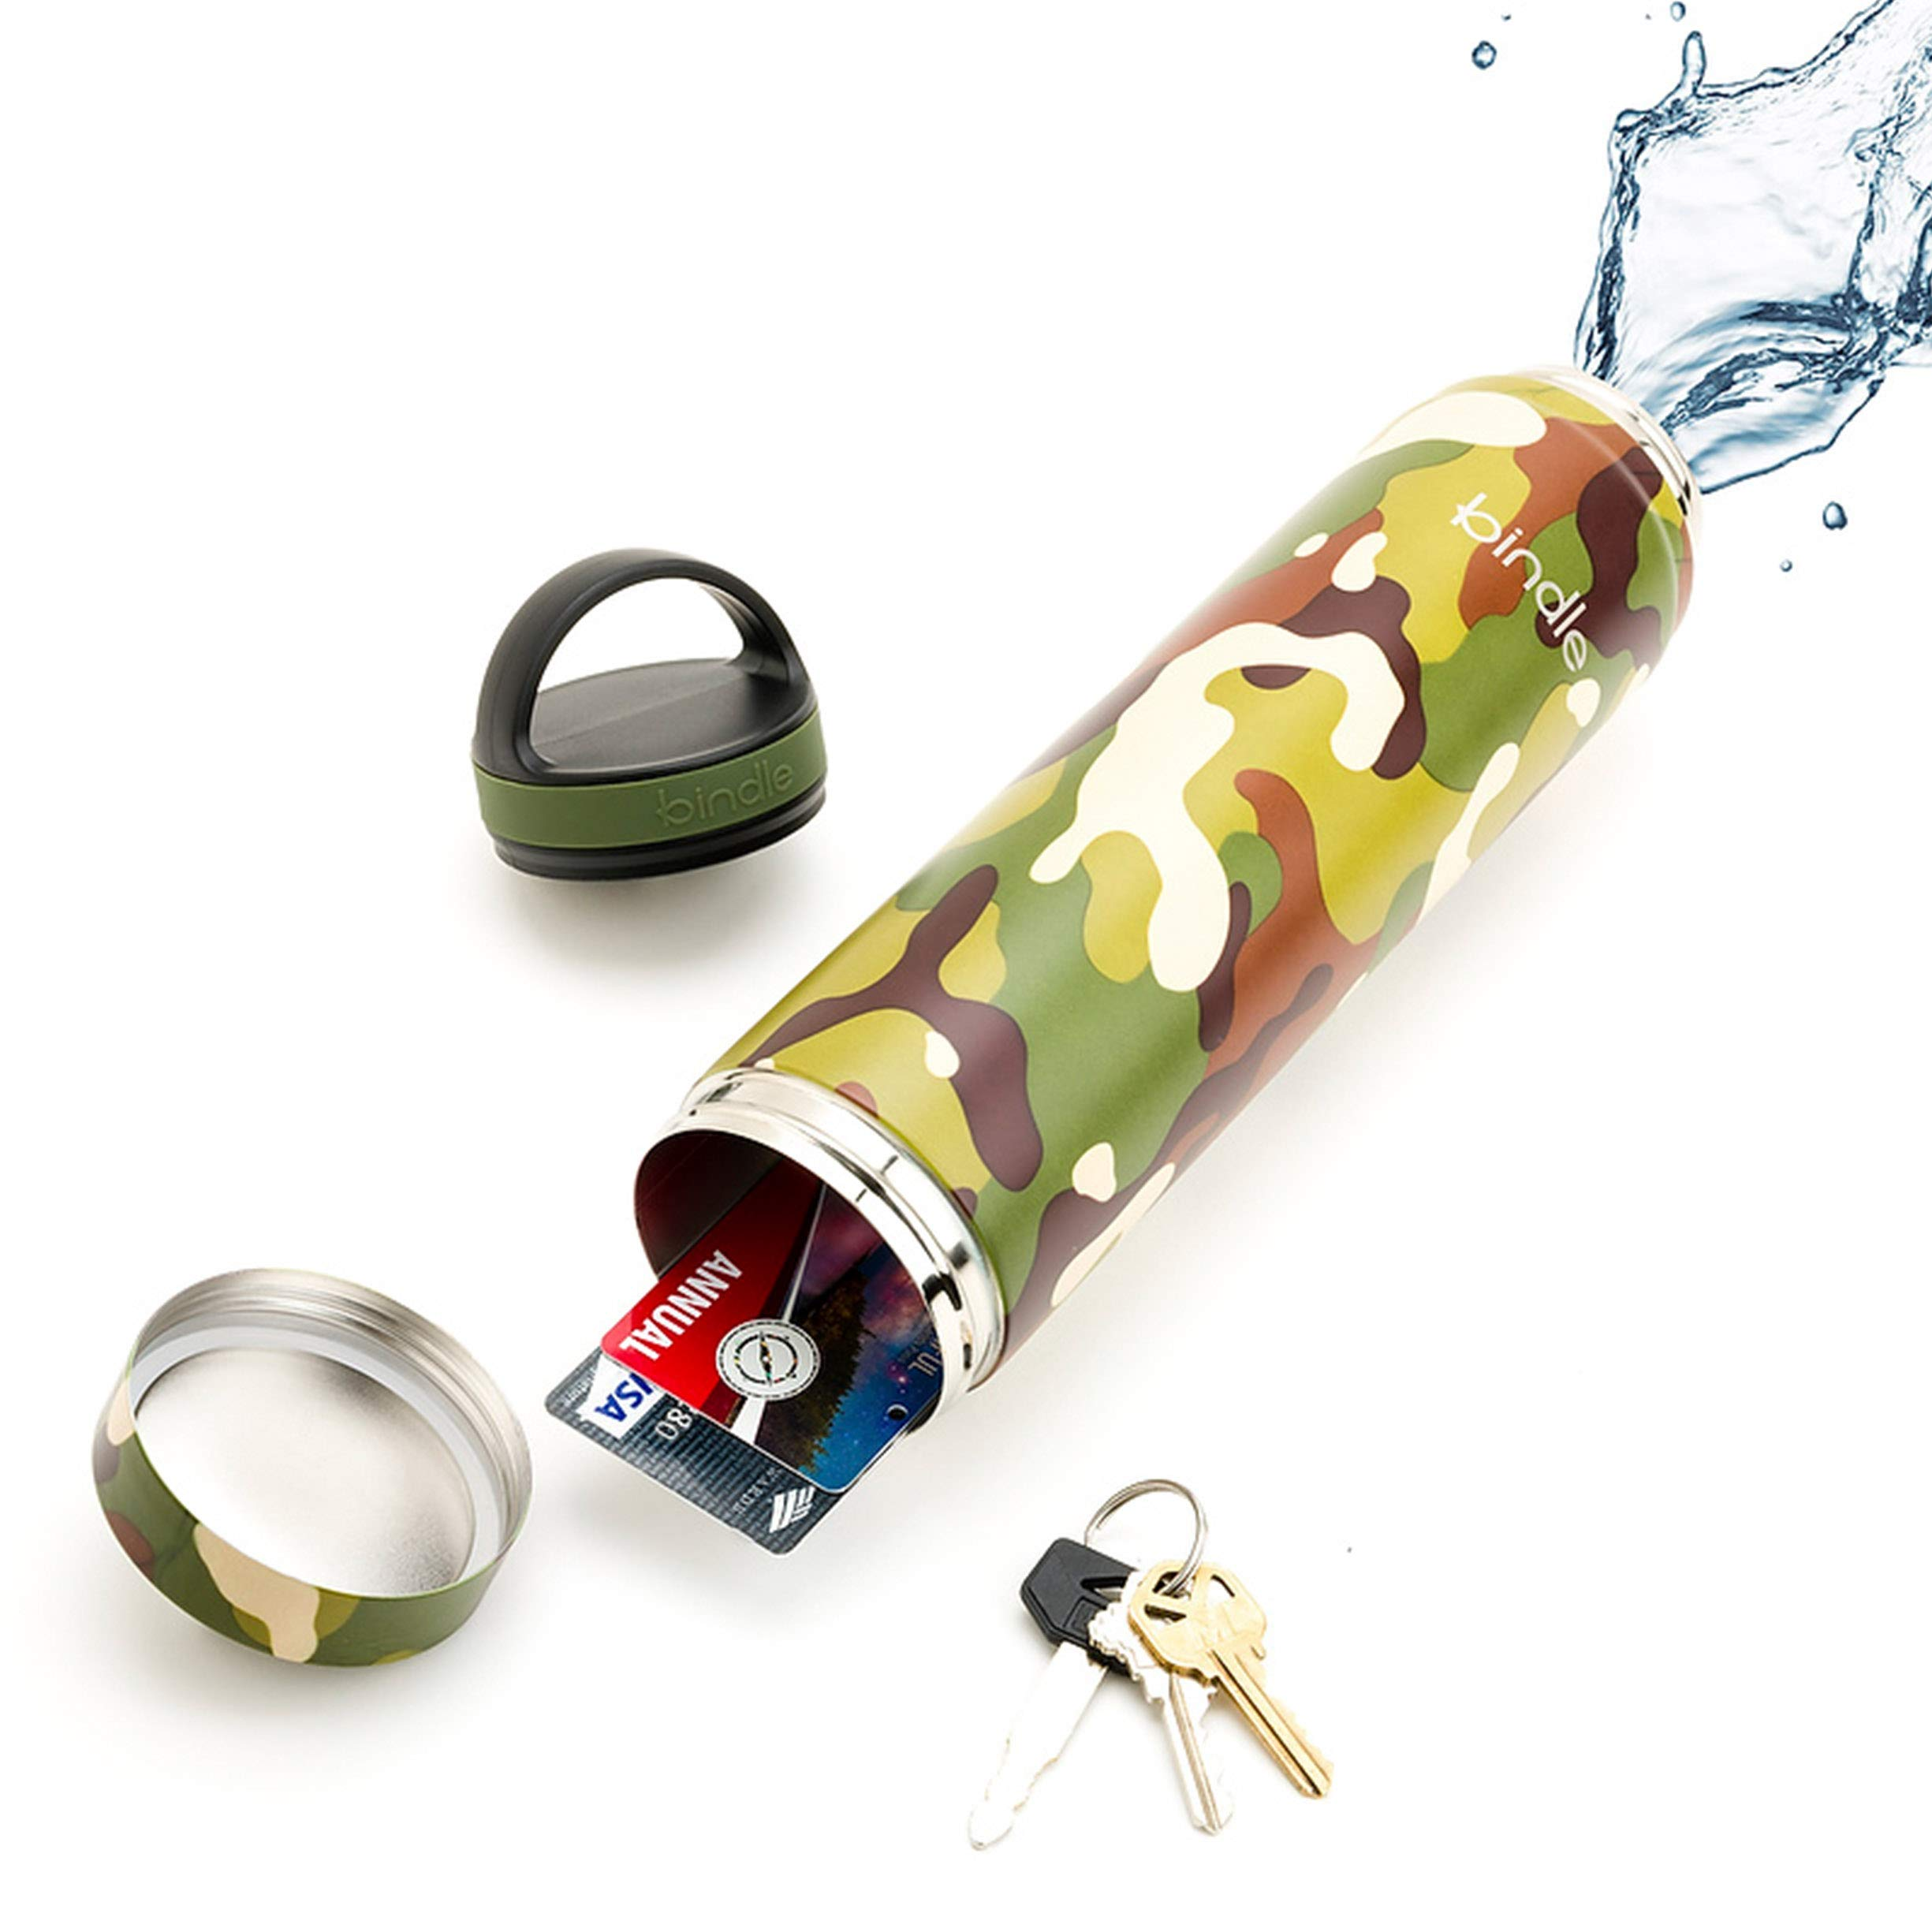 Bindle Bottle 20oz Slim Green Camo   Stainless Steel Double Walled & Vacuum Insulated Water Bottle with Storage/Stash Compartment   Cup Holder Friendly   Drinks Stay Cold for 24 Hours, Hot for 12